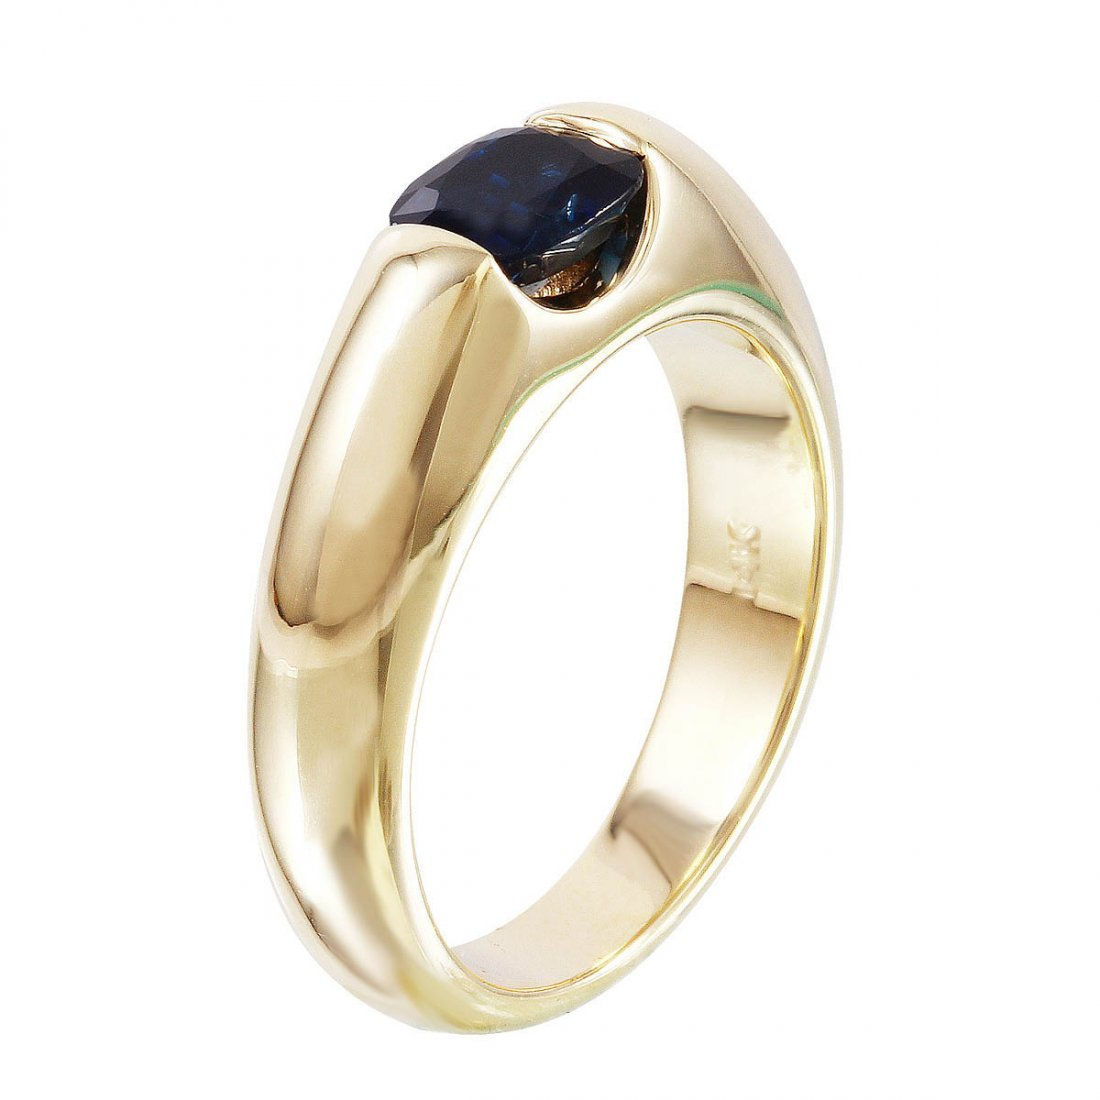 14K Yellow Gold Sapphire Solitaire Ring - 2